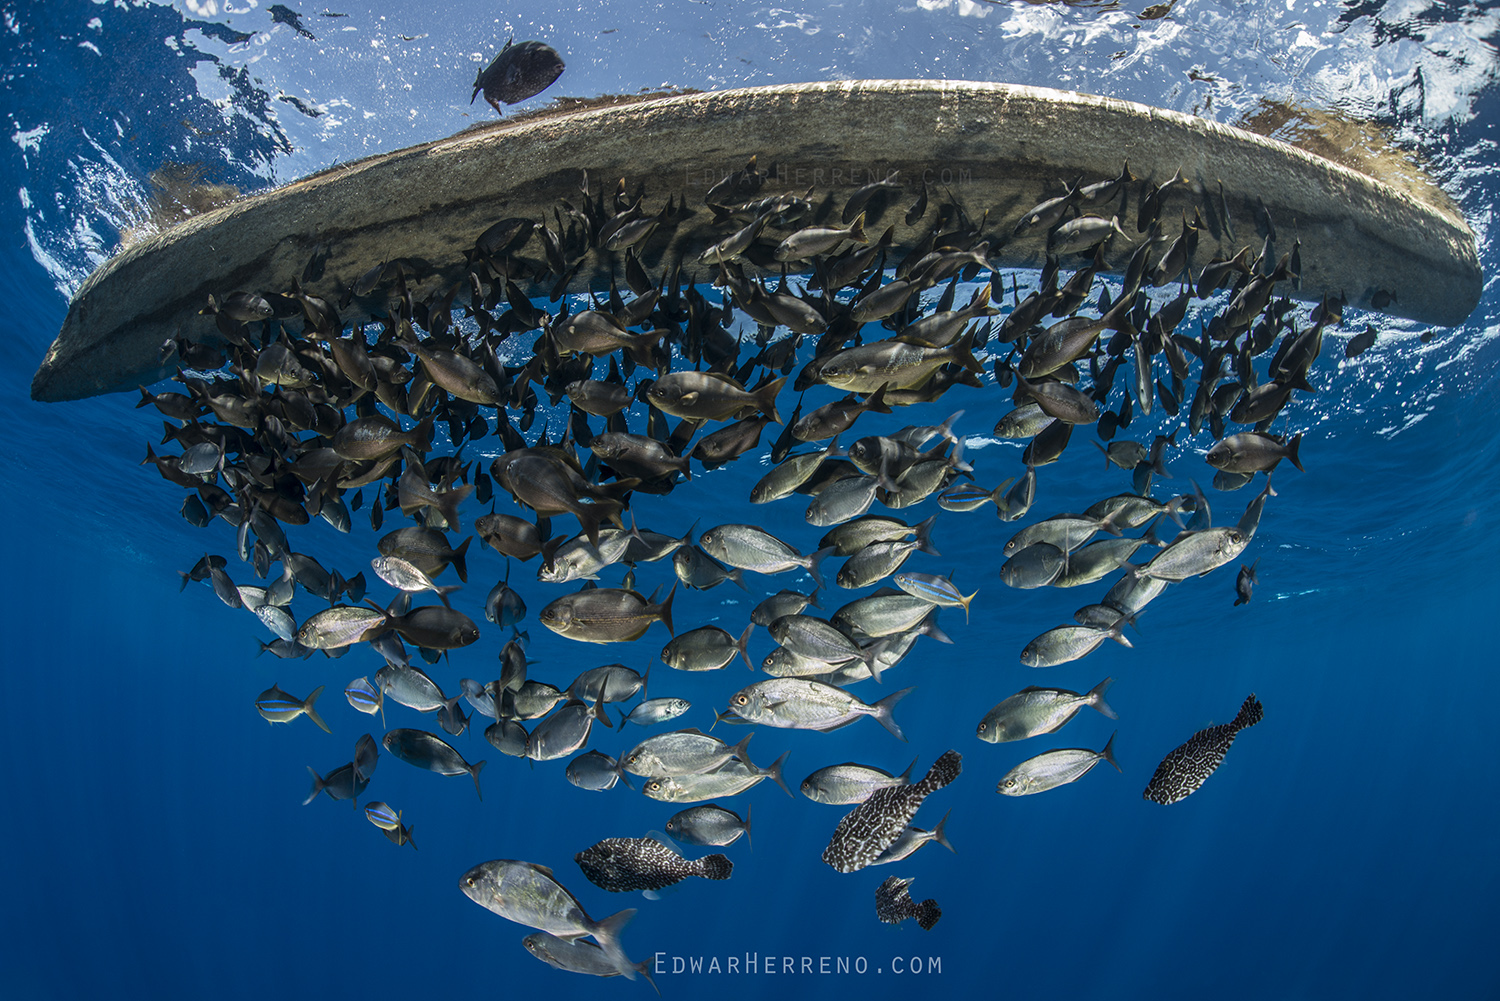 Pelagic Fish Under a Log Drifting in the Eastern Pacific